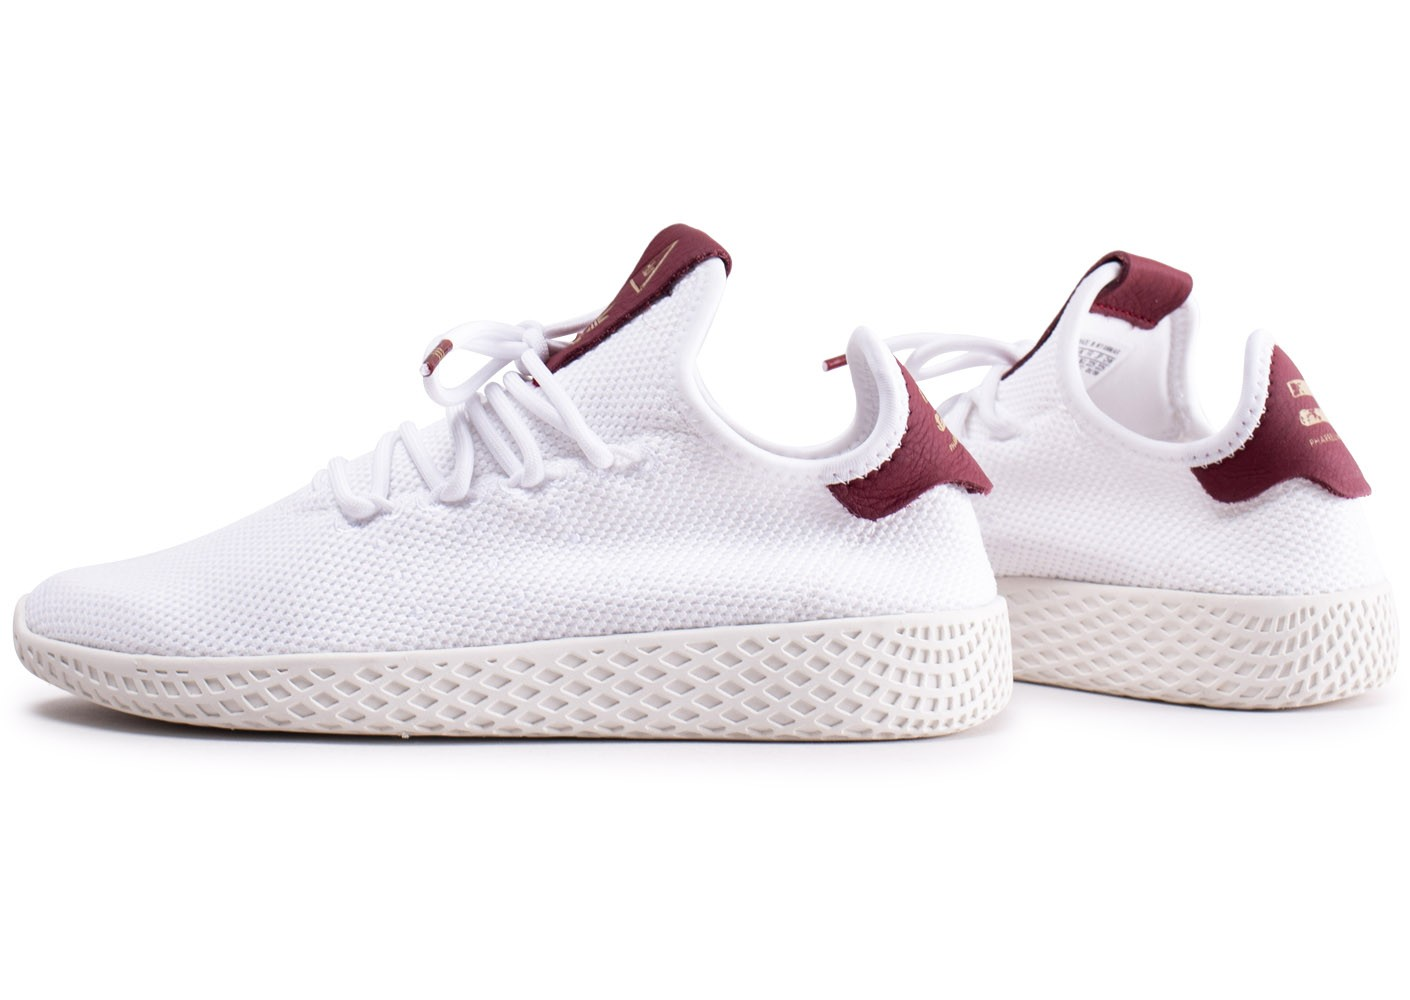 revendeur 89aa1 09224 adidas Pharrell Williams Tennis Hu blanche et bordeaux femme ...